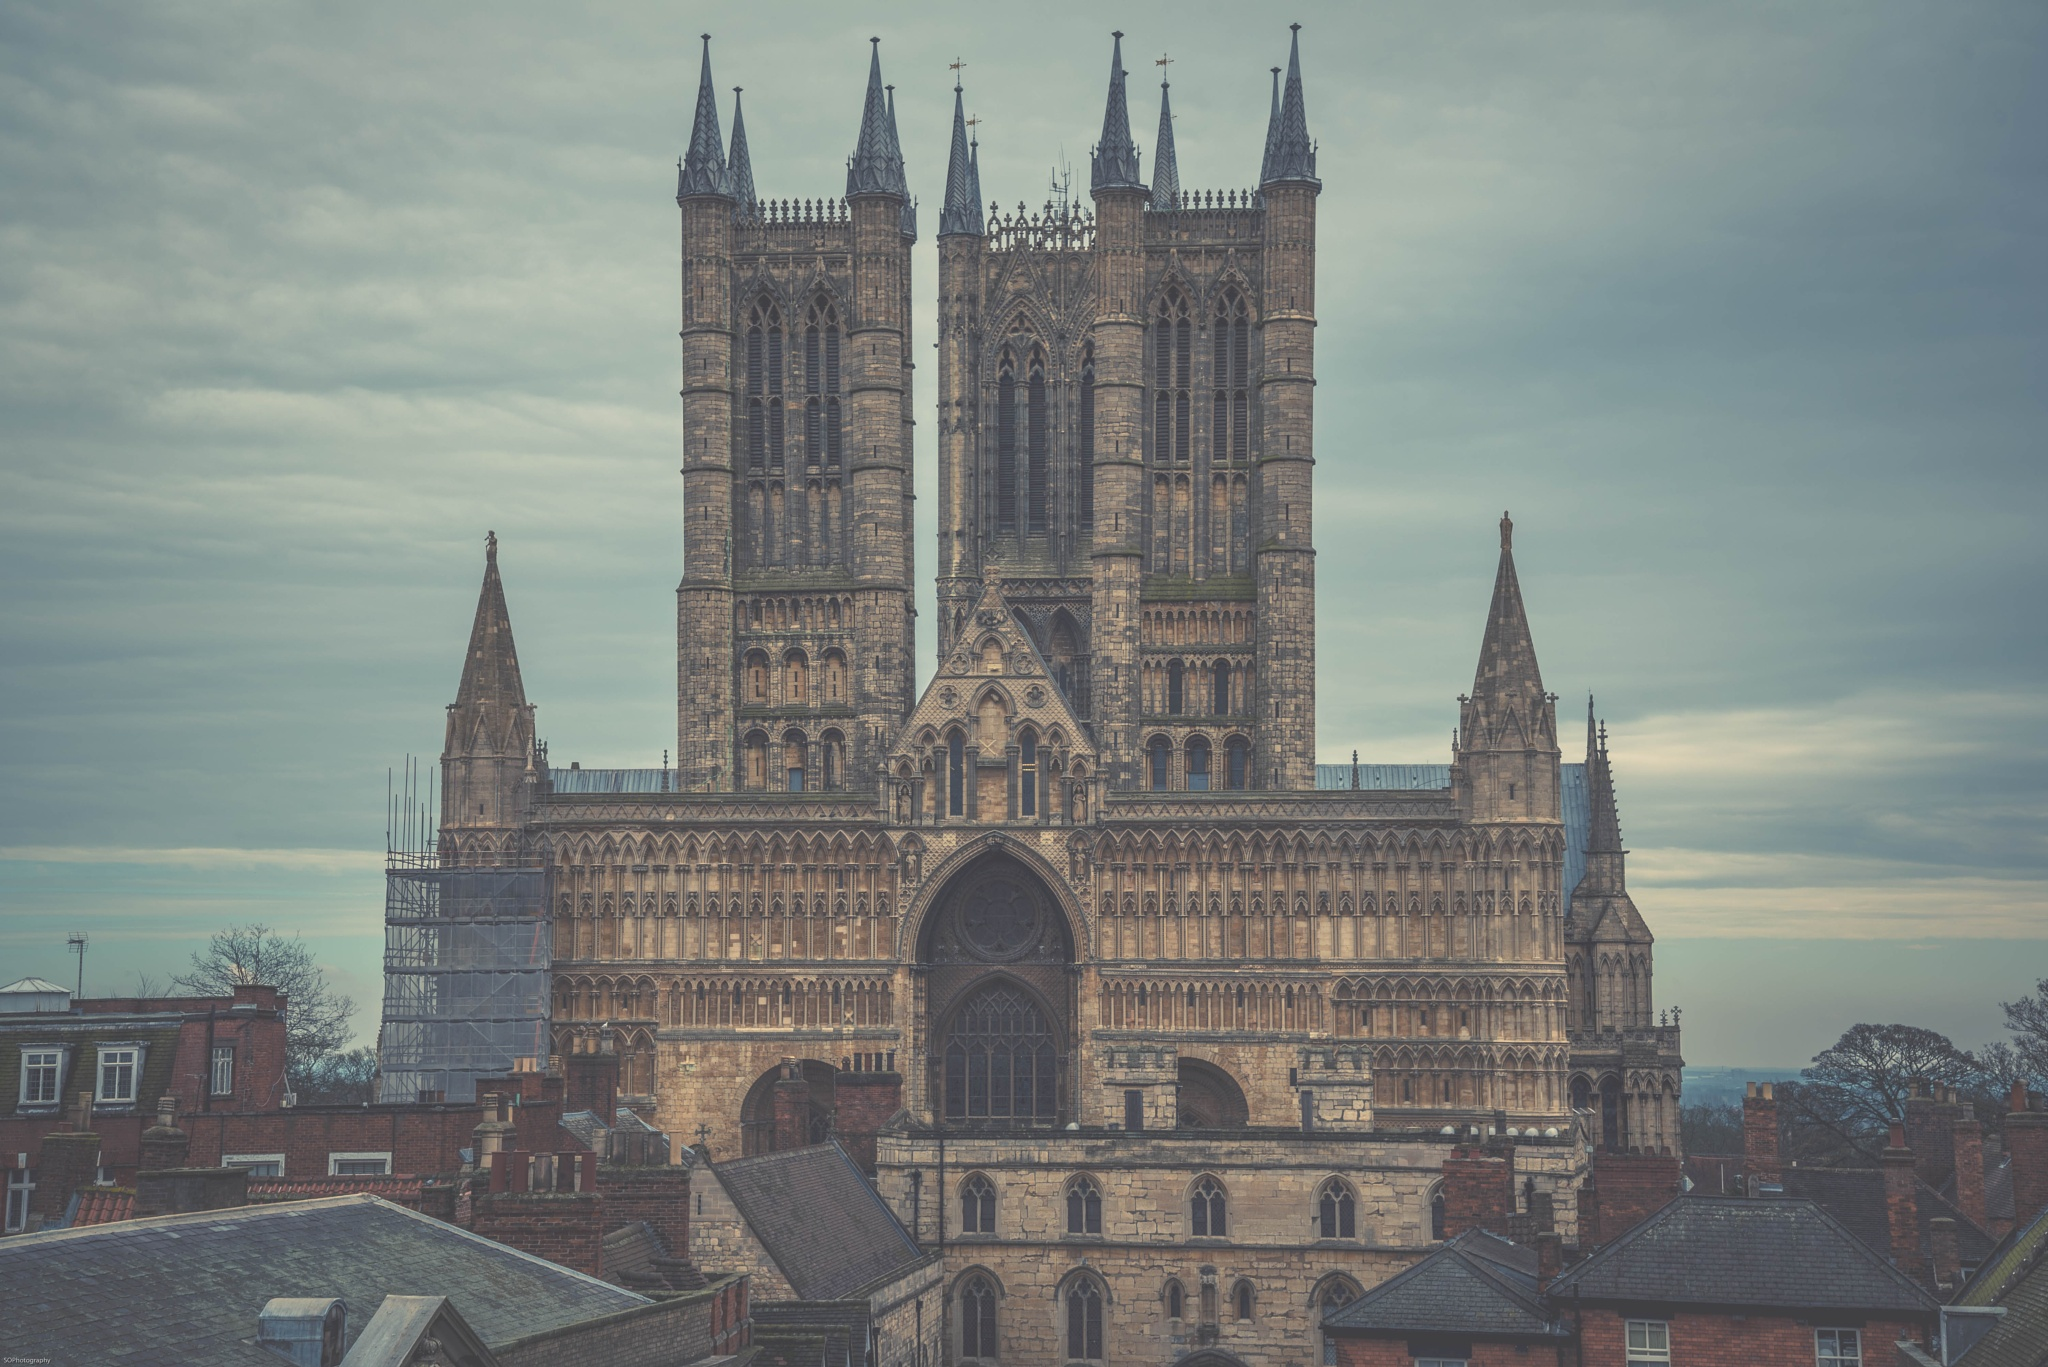 Lincoln Cathedral by simon.oneill.18